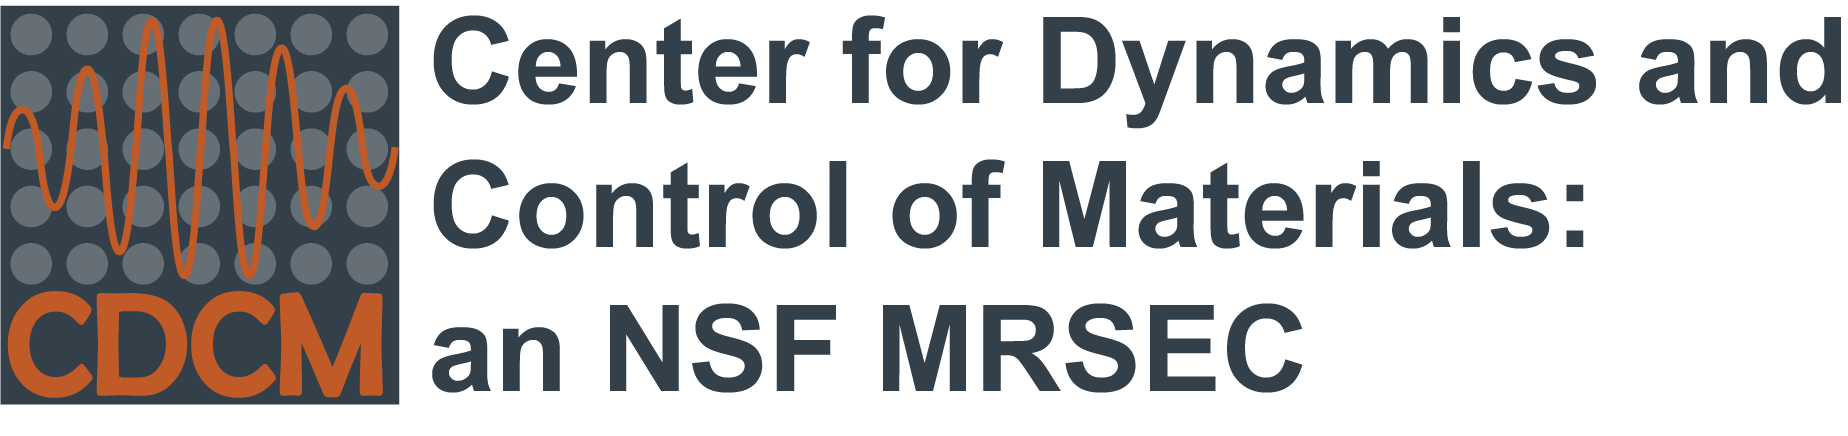 Center for Dynamics and Control of Materials: an NSF MRSEC logo